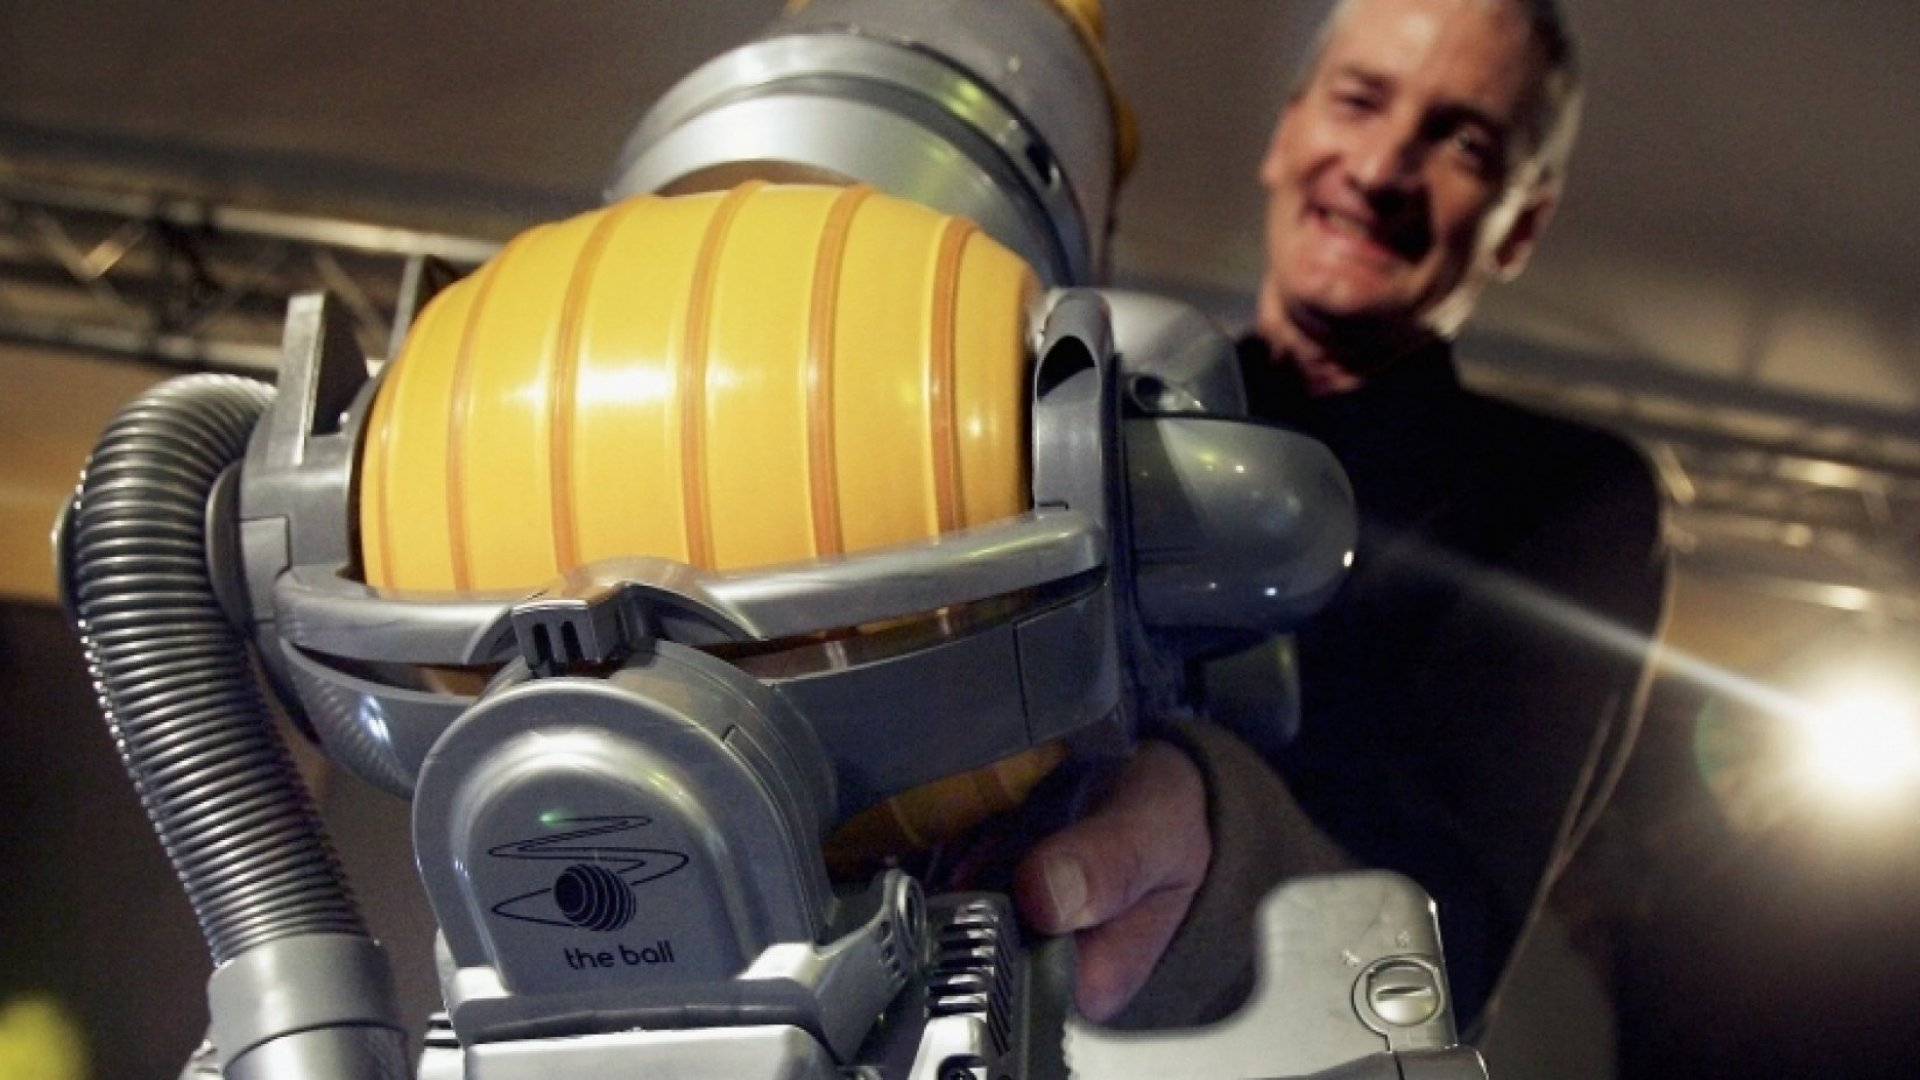 Suck It Up: James Dyson's Lessons in Perseverance